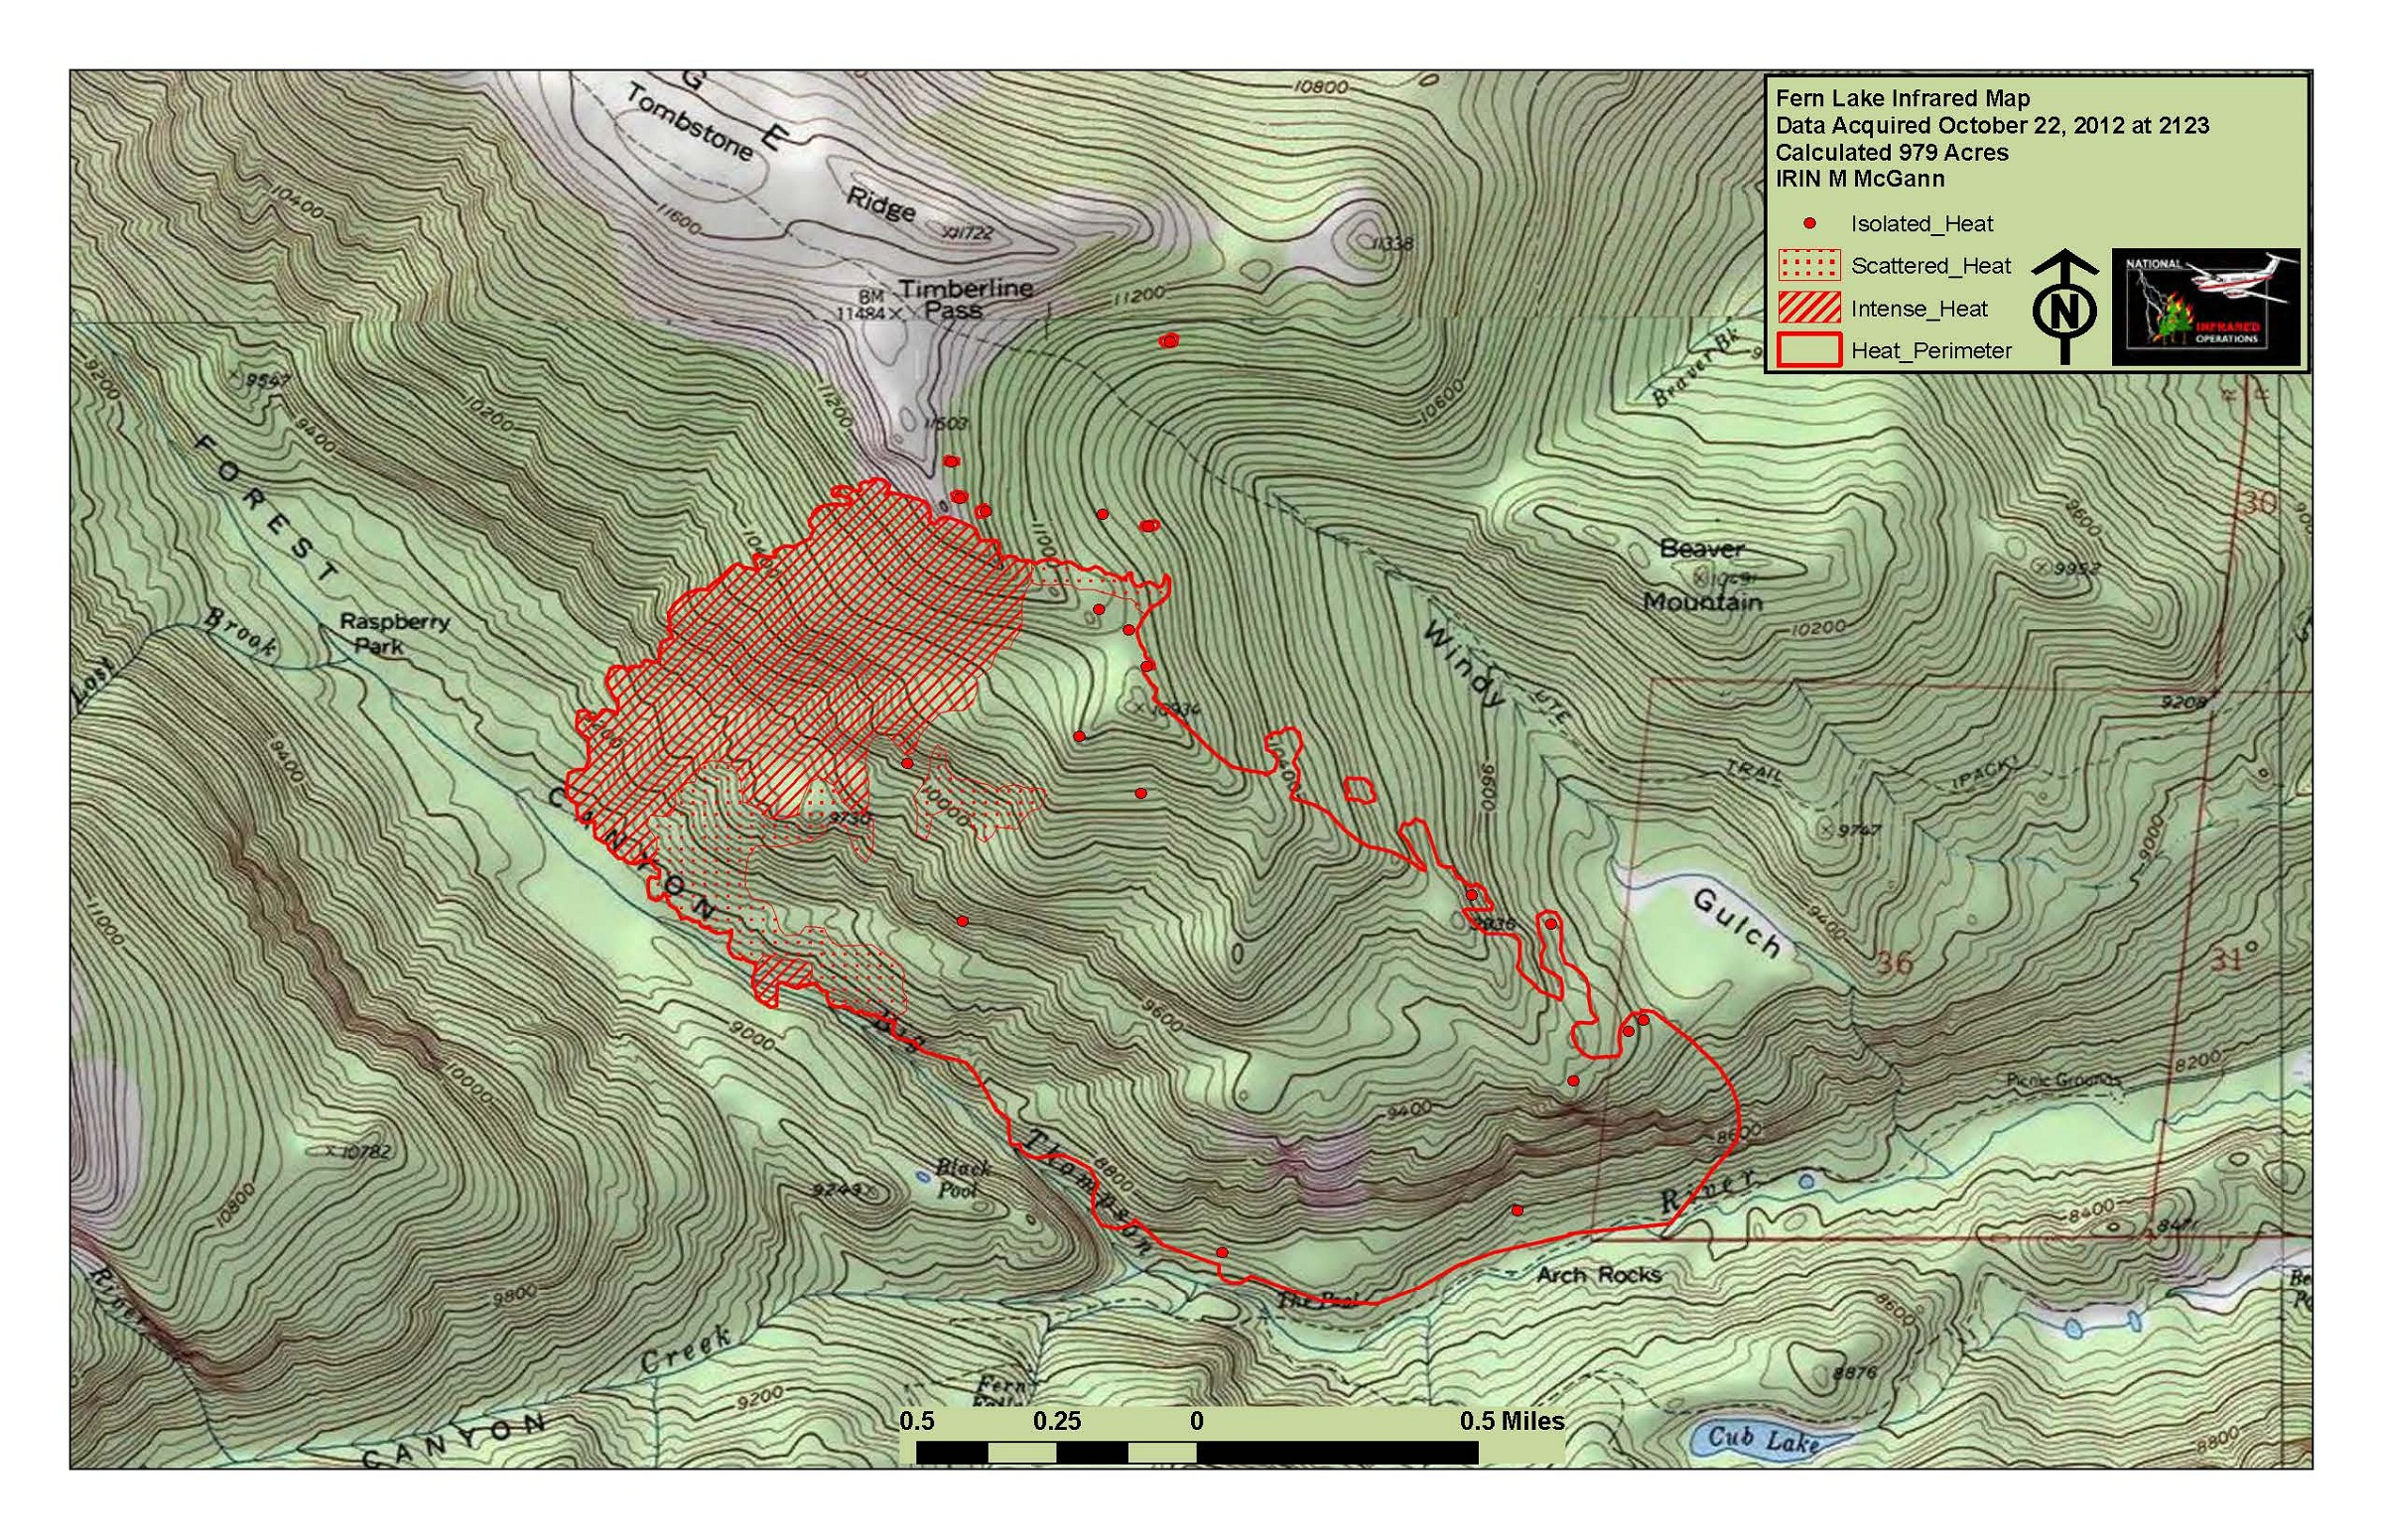 20121023_Fern_Lake_IR_Map_topo_reduced 2400 jpeg